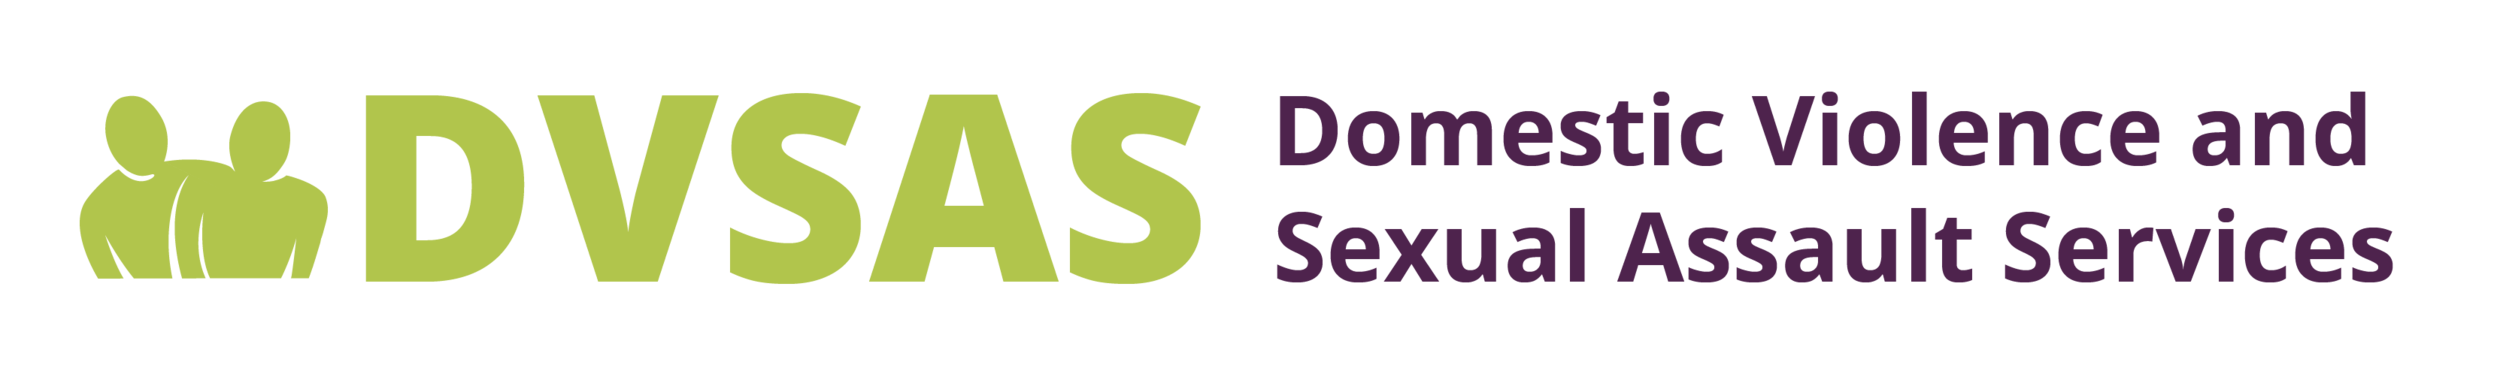 DVSAS domestic violence and sexual assault services logo .png